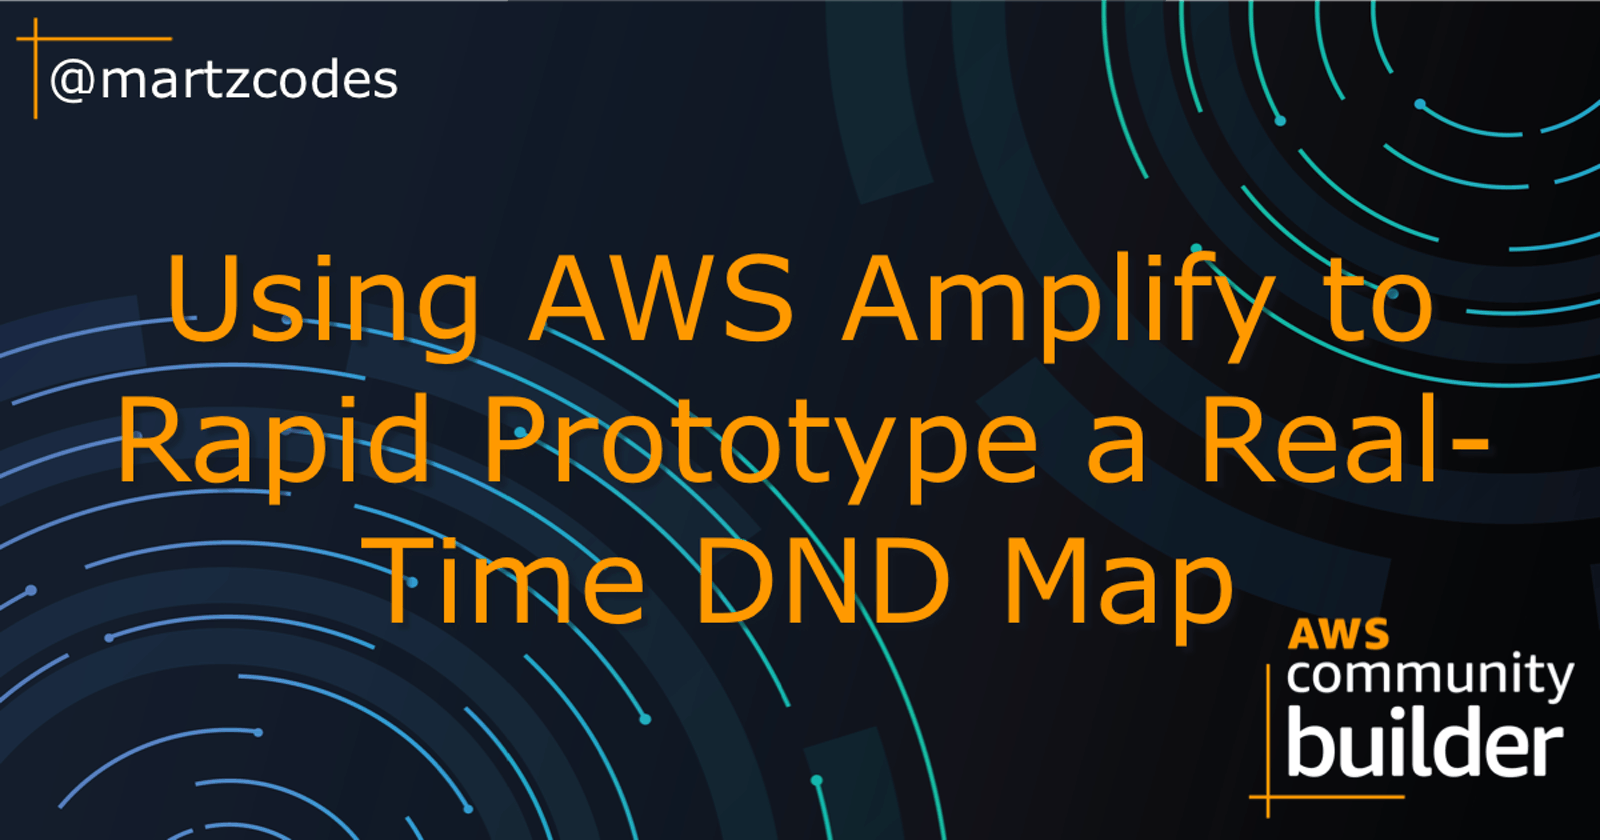 Using AWS Amplify to Rapid Prototype a Real-Time Dungeons&Dragons Map